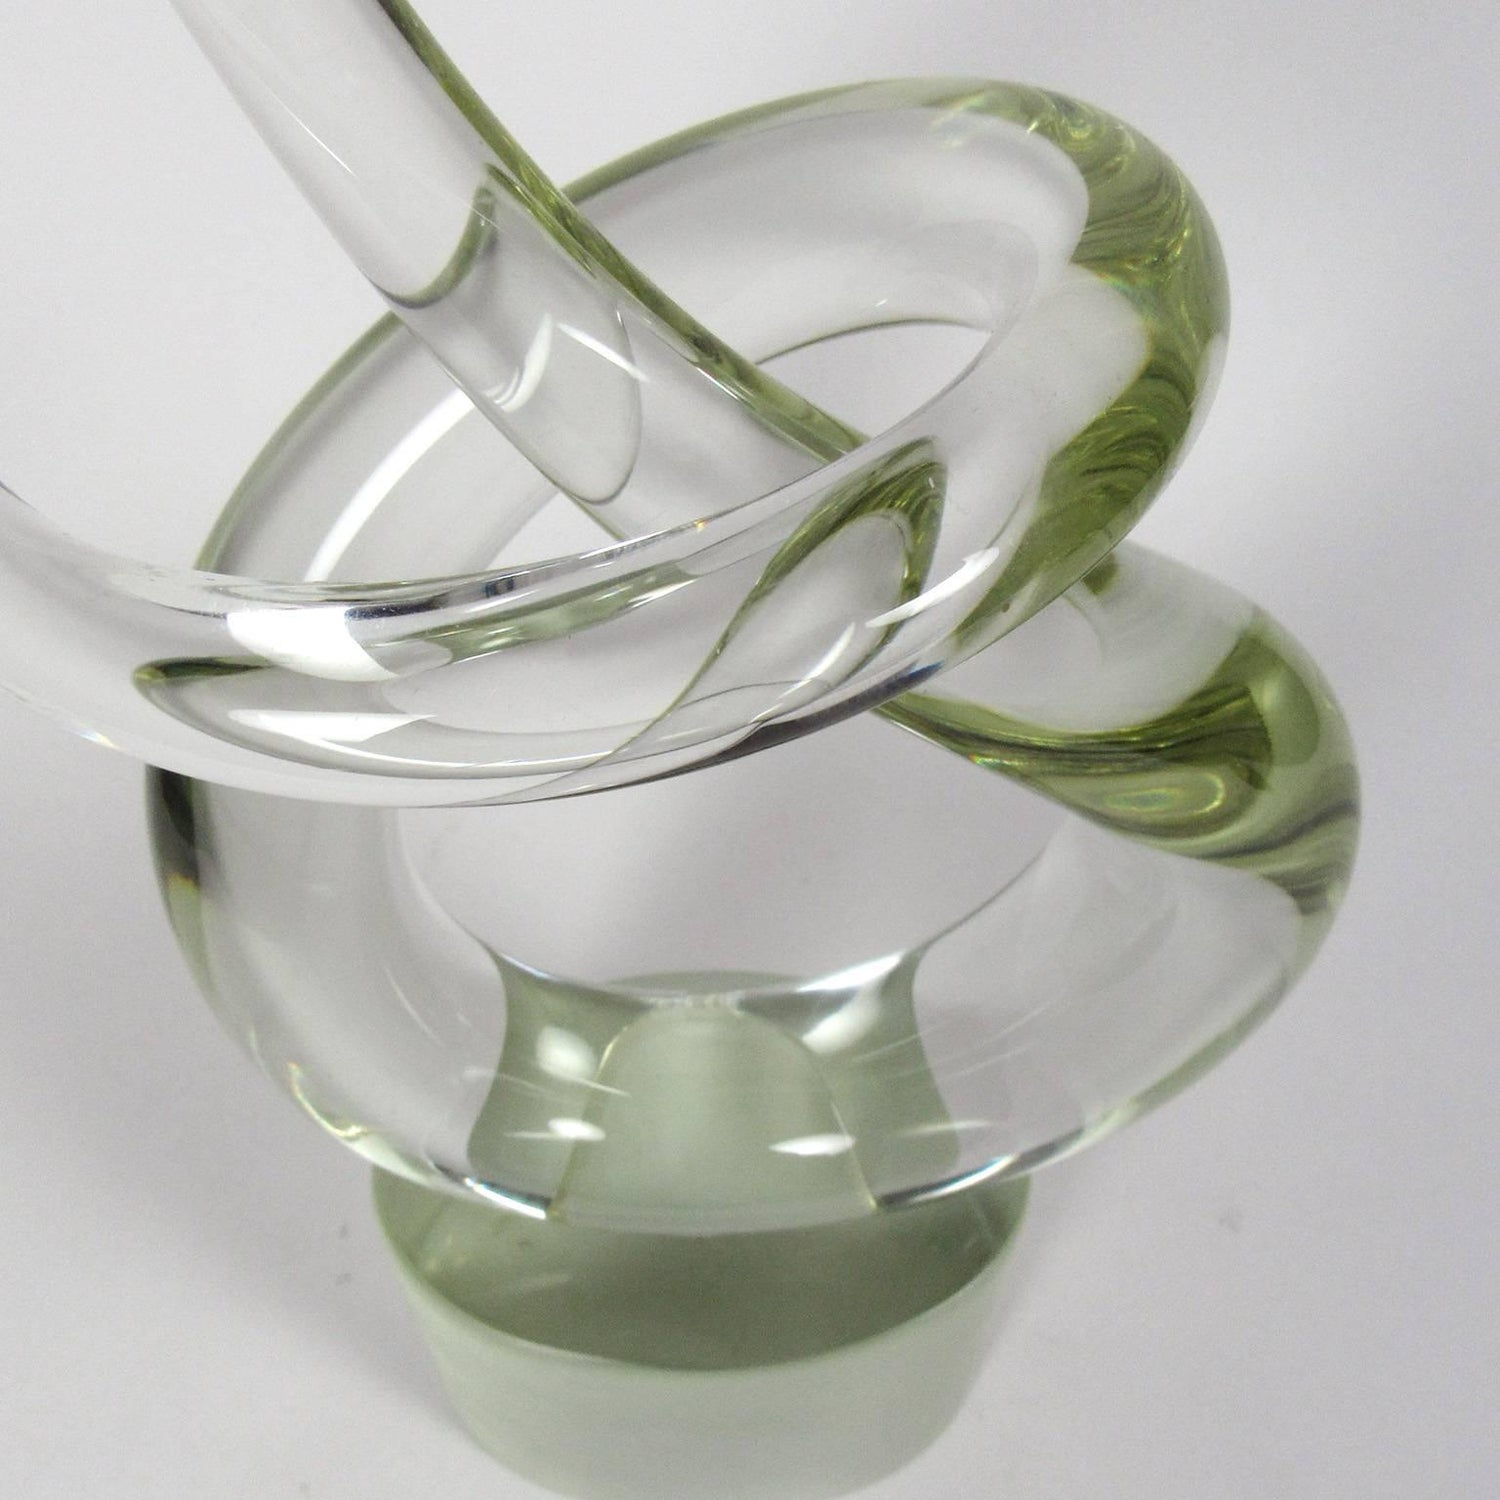 Murano Renata Anatra Clear Glass Abstract Sculpture For Sale at 1stdibs